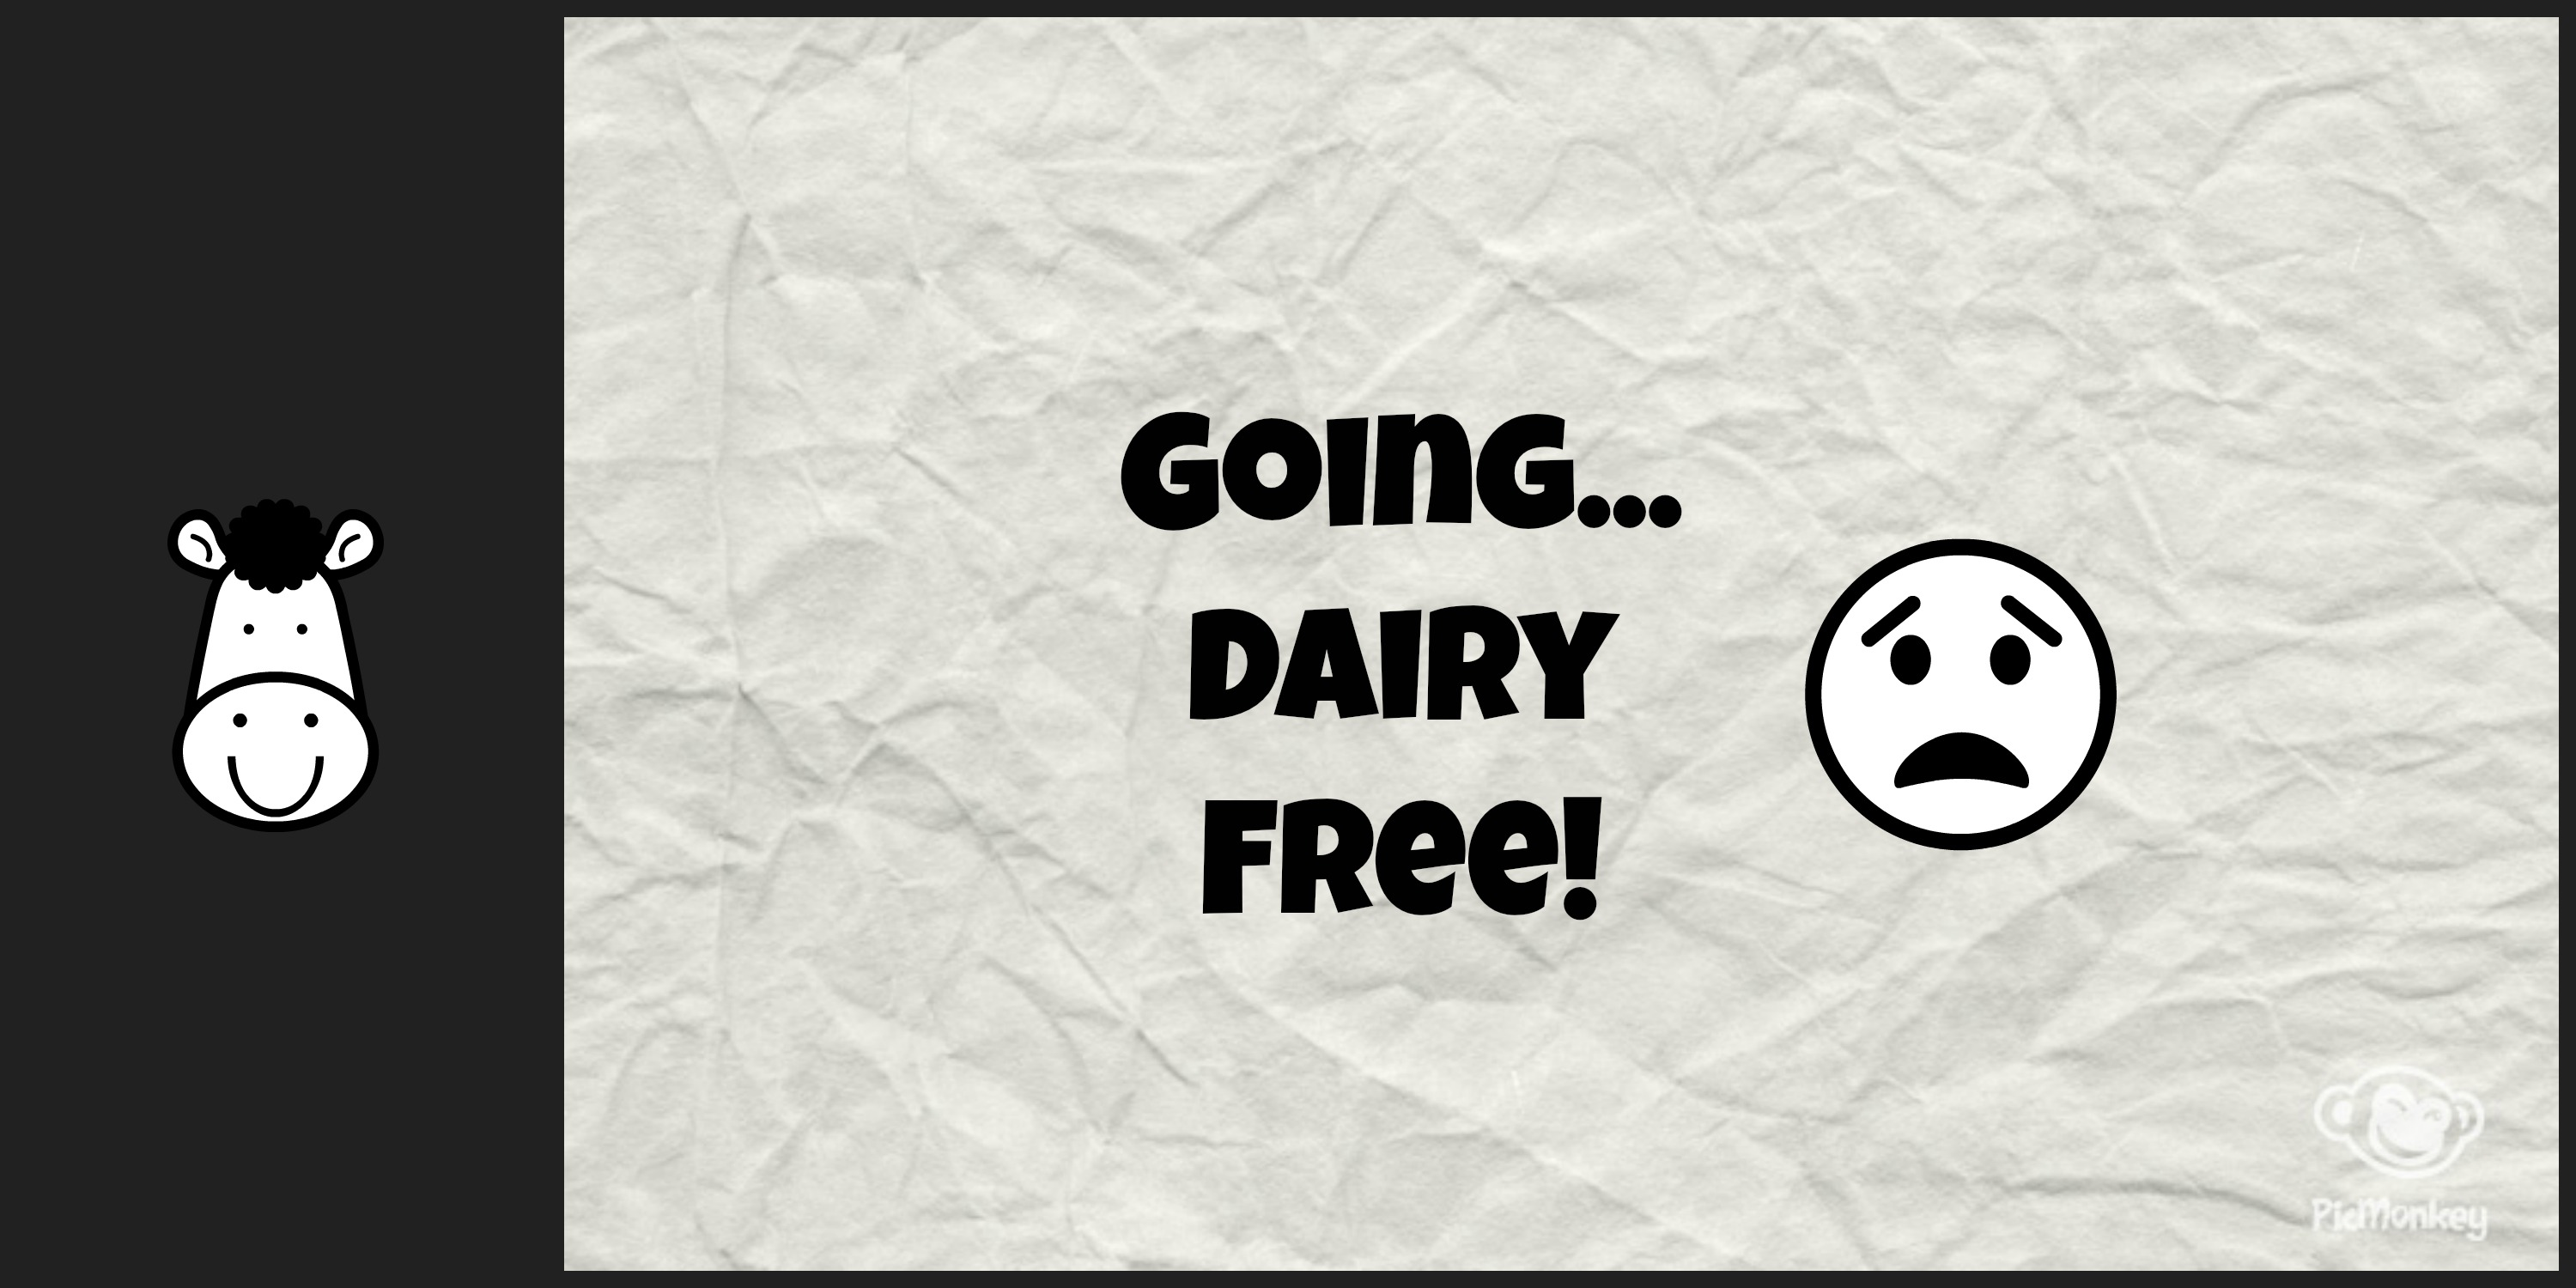 Going Dairy Free